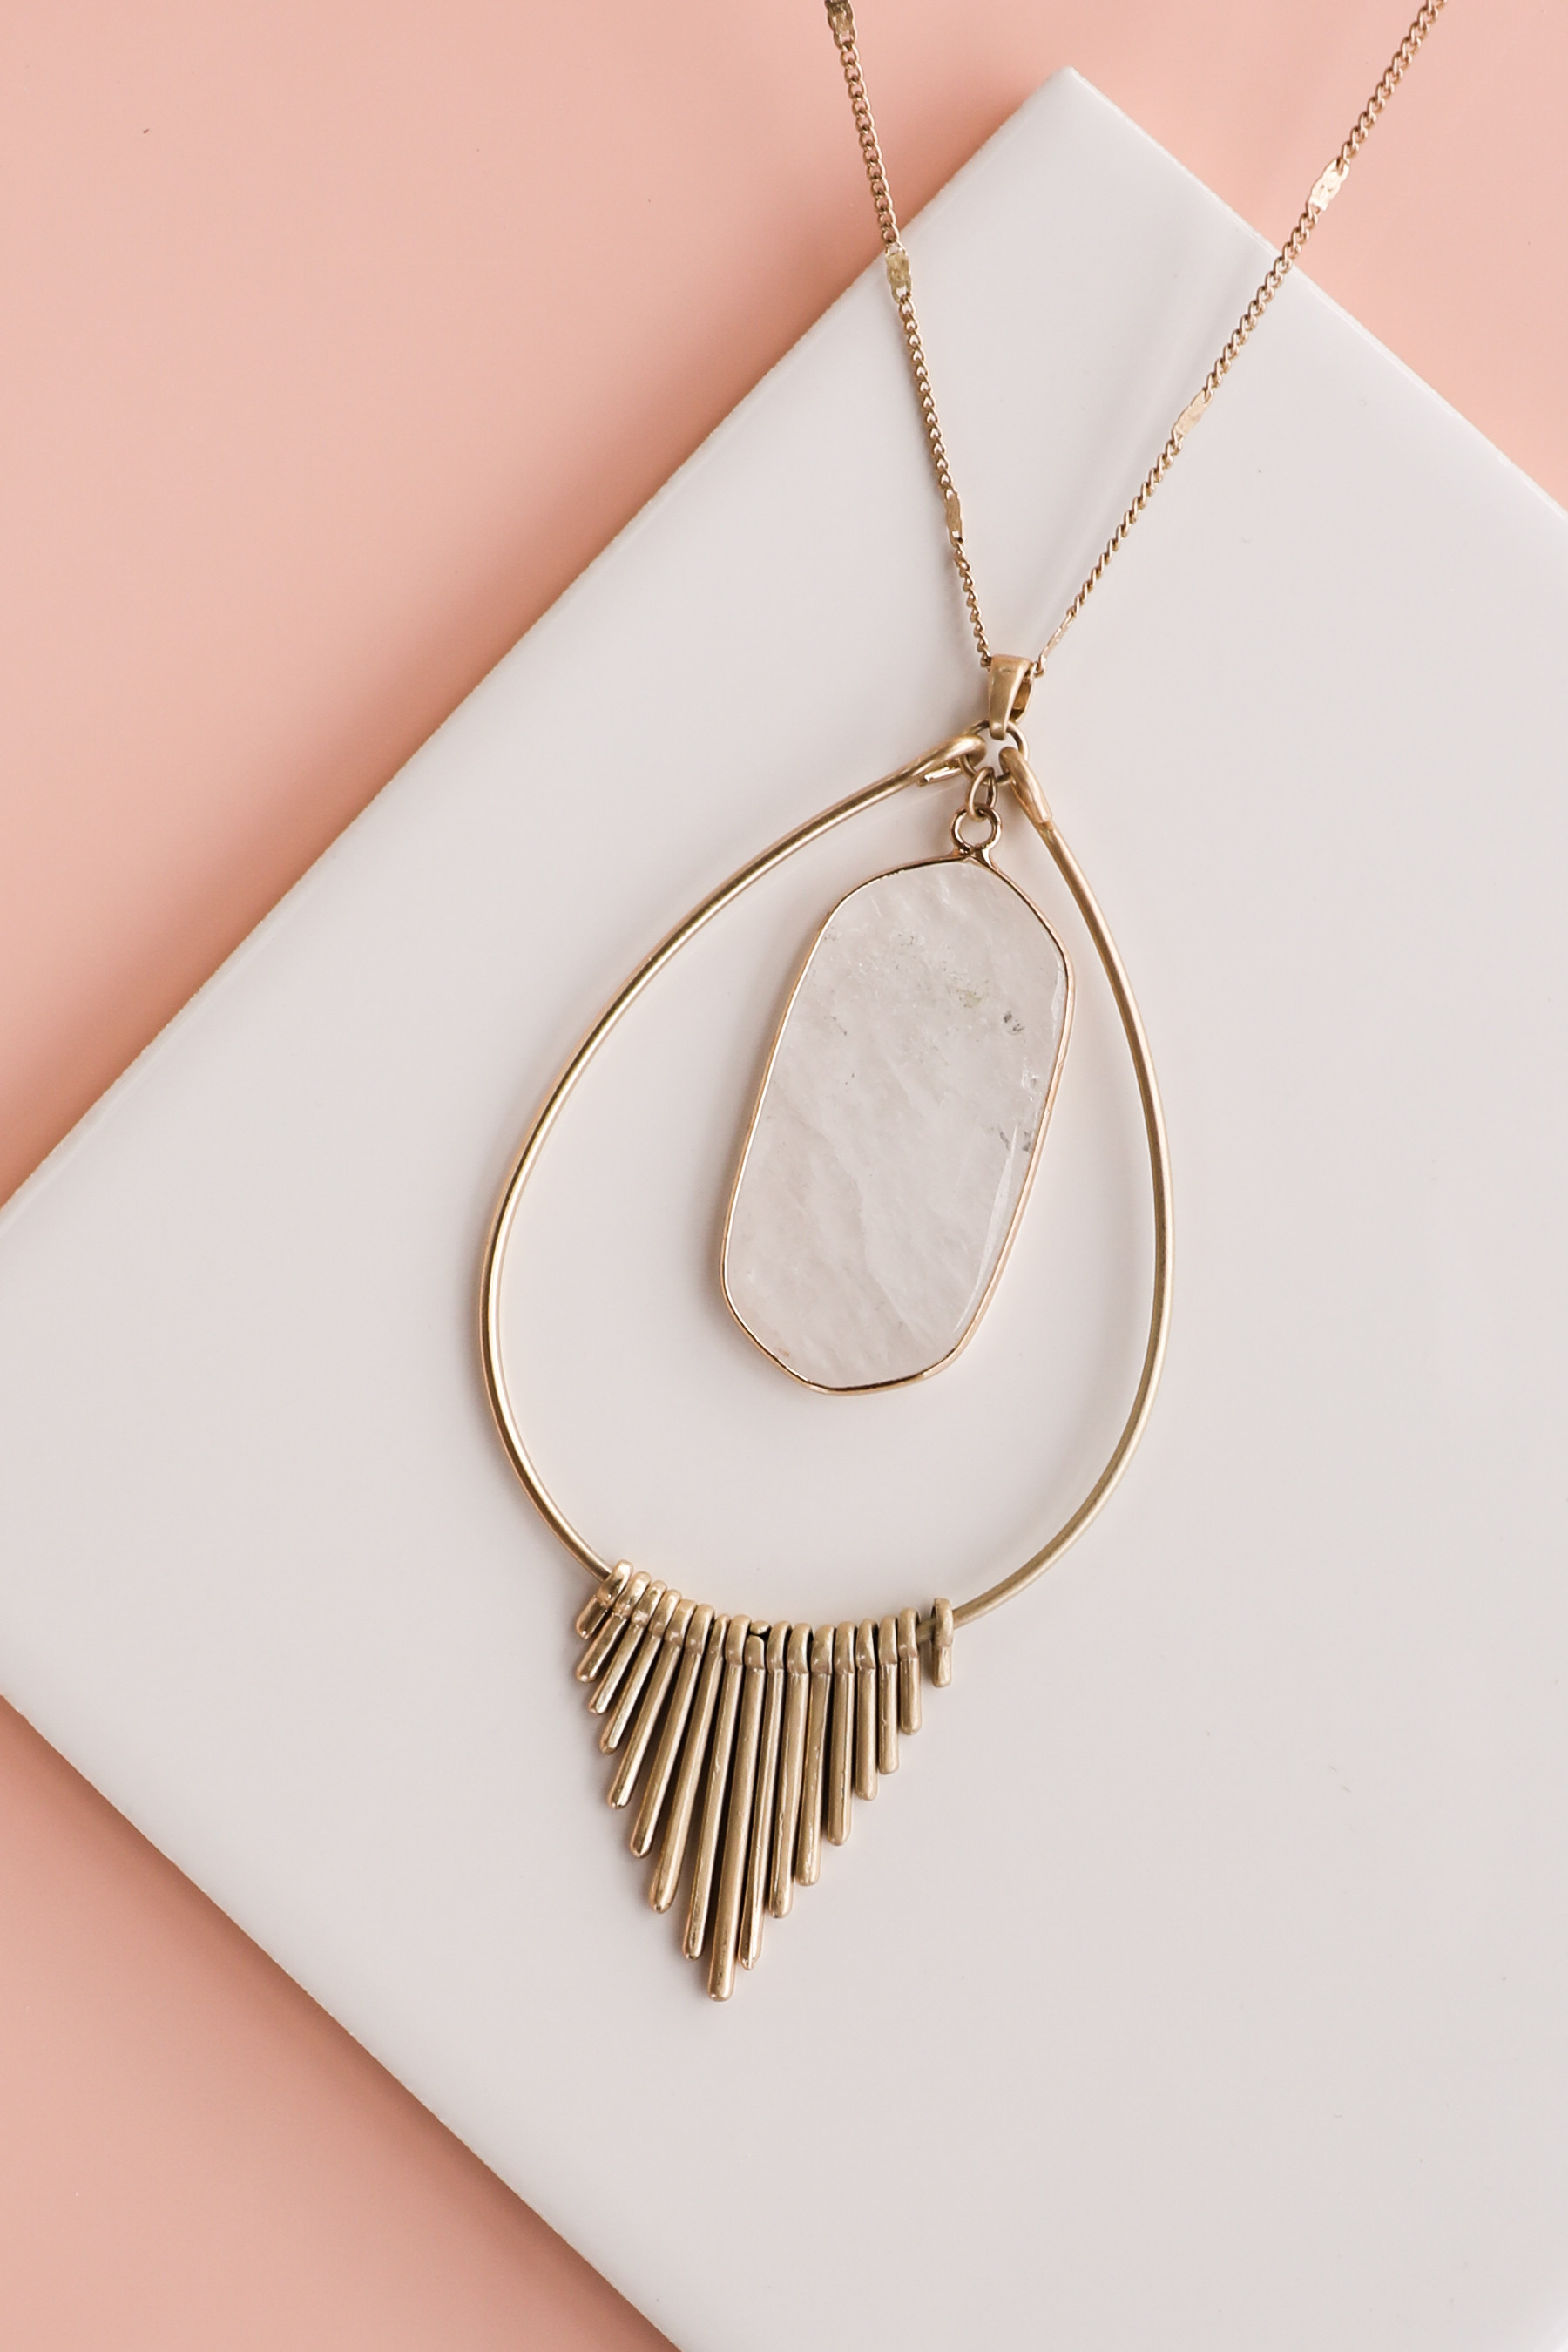 Gold Long Necklace with Crystal Pendant and Metal Fringe